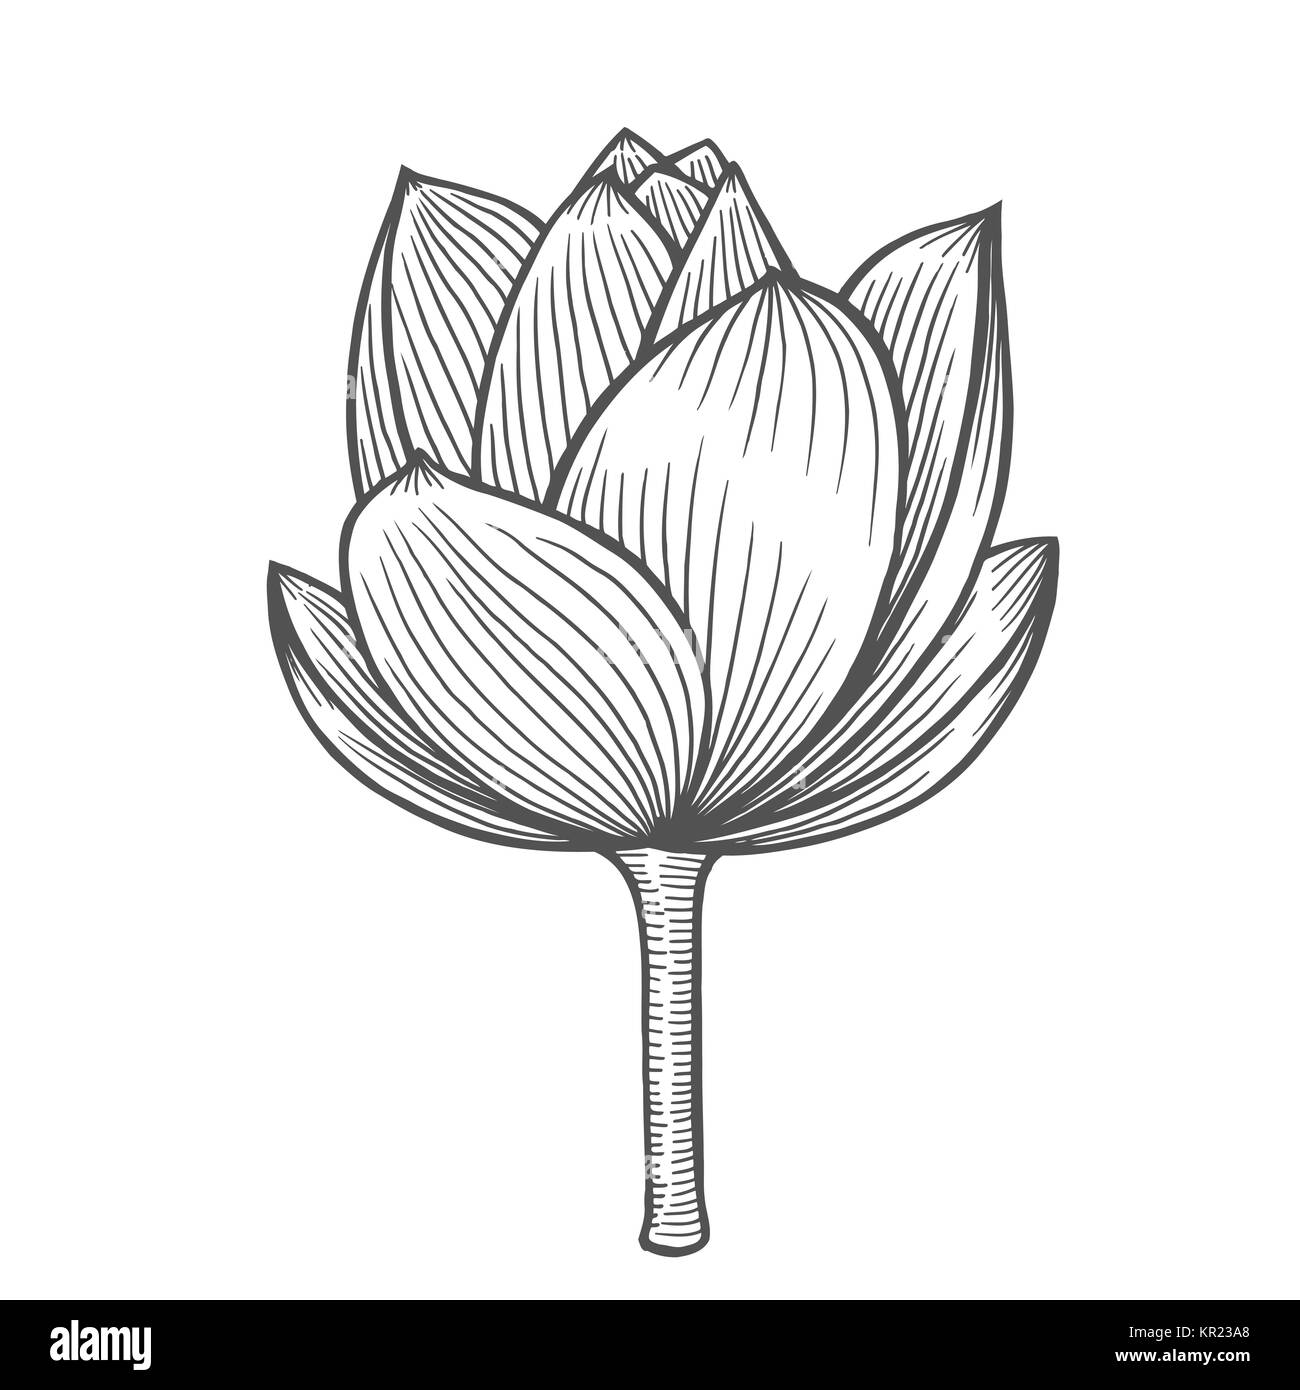 Lotus Flower Illustration Line Pattern Vector Artwork Coloring Book Page For Adult Love Bohemia Concept Wedding Invitation Card Ticket Brand